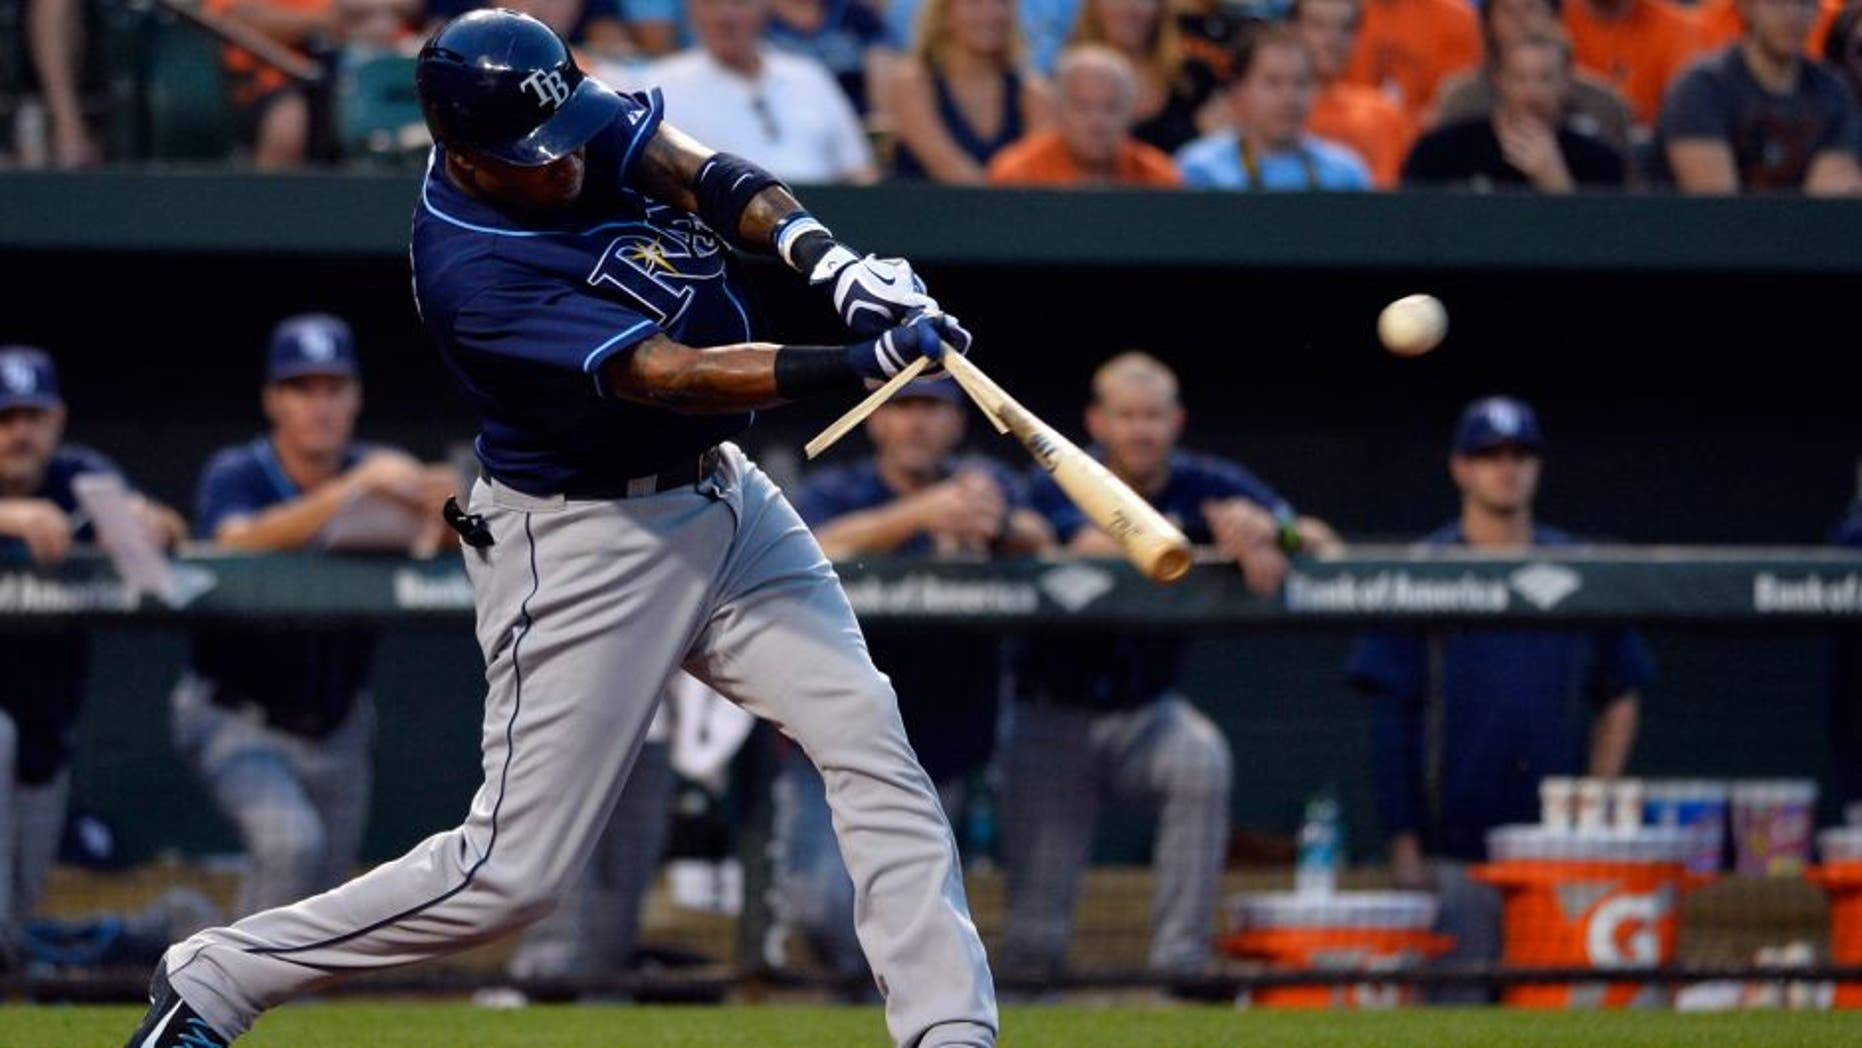 Aug 31, 2015; Baltimore, MD, USA; Tampa Bay Rays designated hitter Tim Beckham (1) hits a sacrifice fly scoring second baseman Logan Forsythe (not pictured) during the second inning against the Baltimore Orioles at Oriole Park at Camden Yards. Mandatory Credit: Tommy Gilligan-USA TODAY Sports